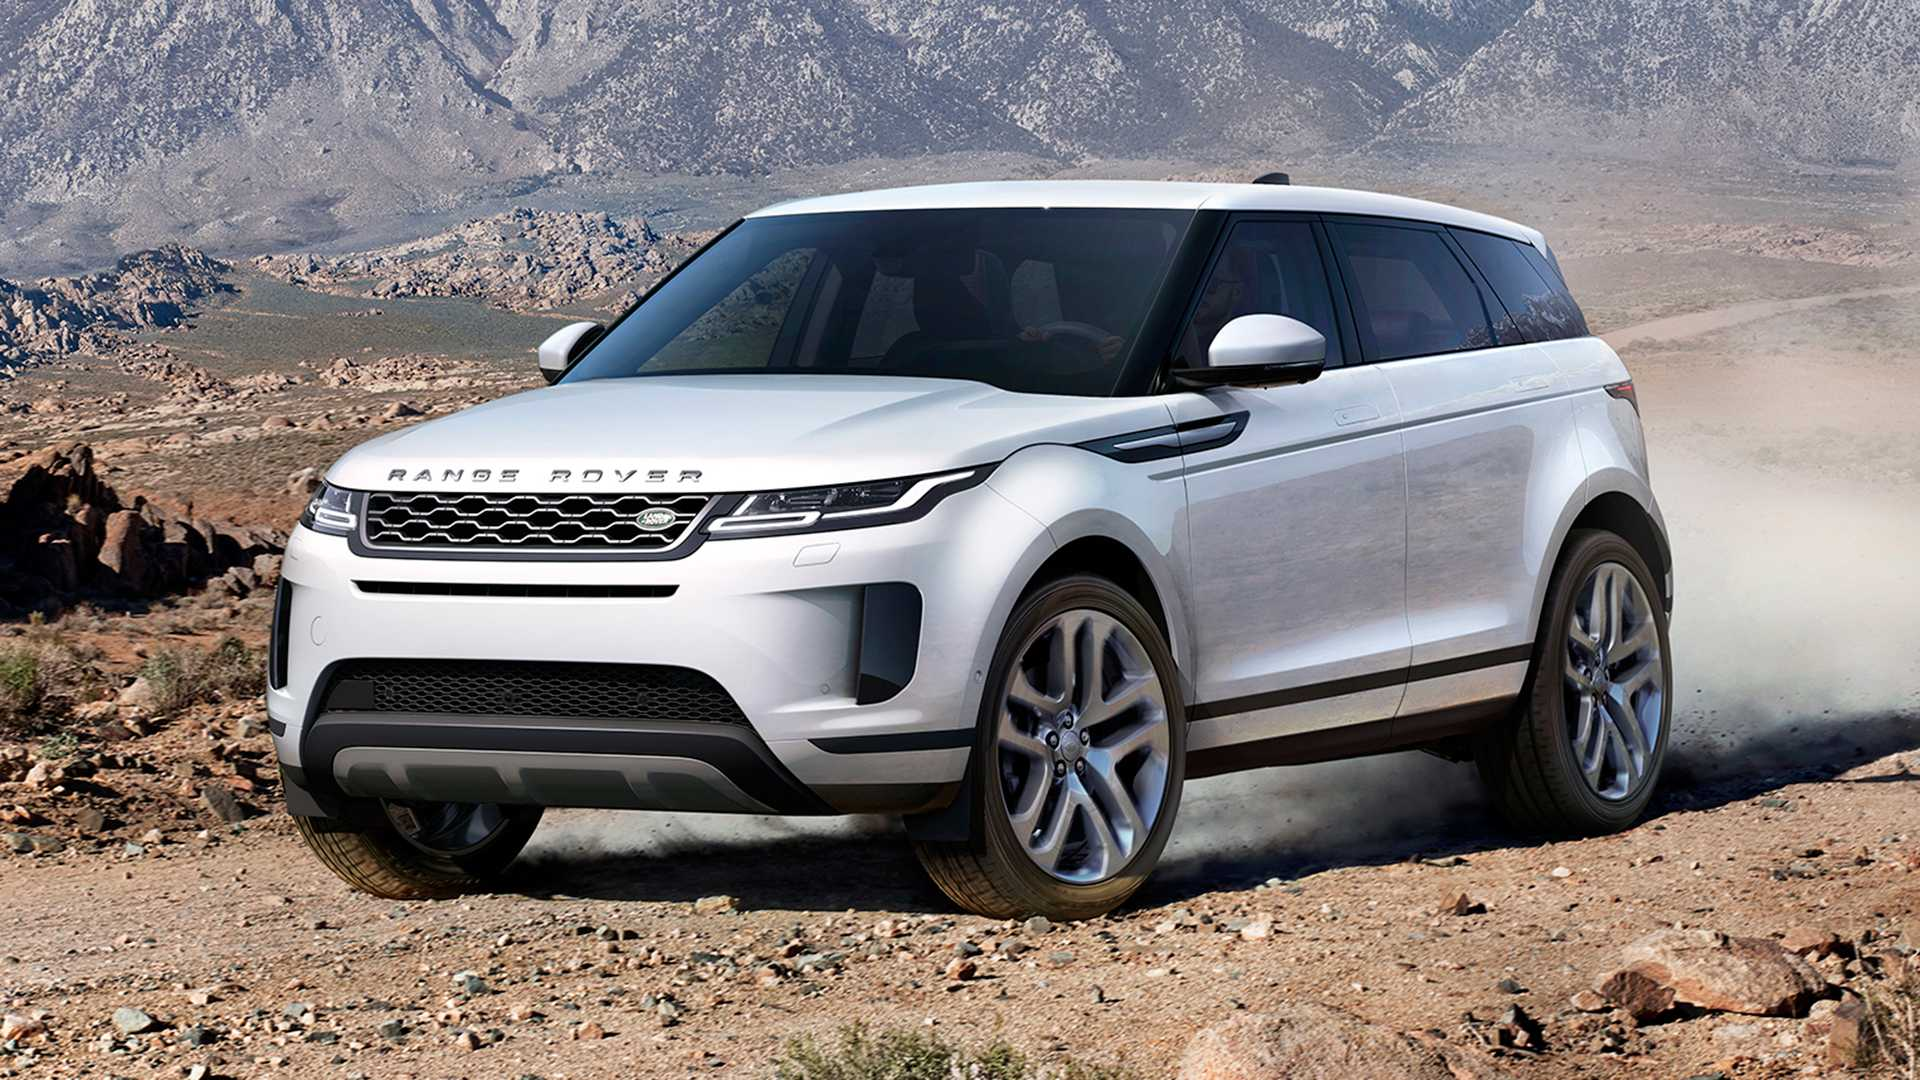 18 New 2020 Range Rover Evoque Style by 2020 Range Rover Evoque